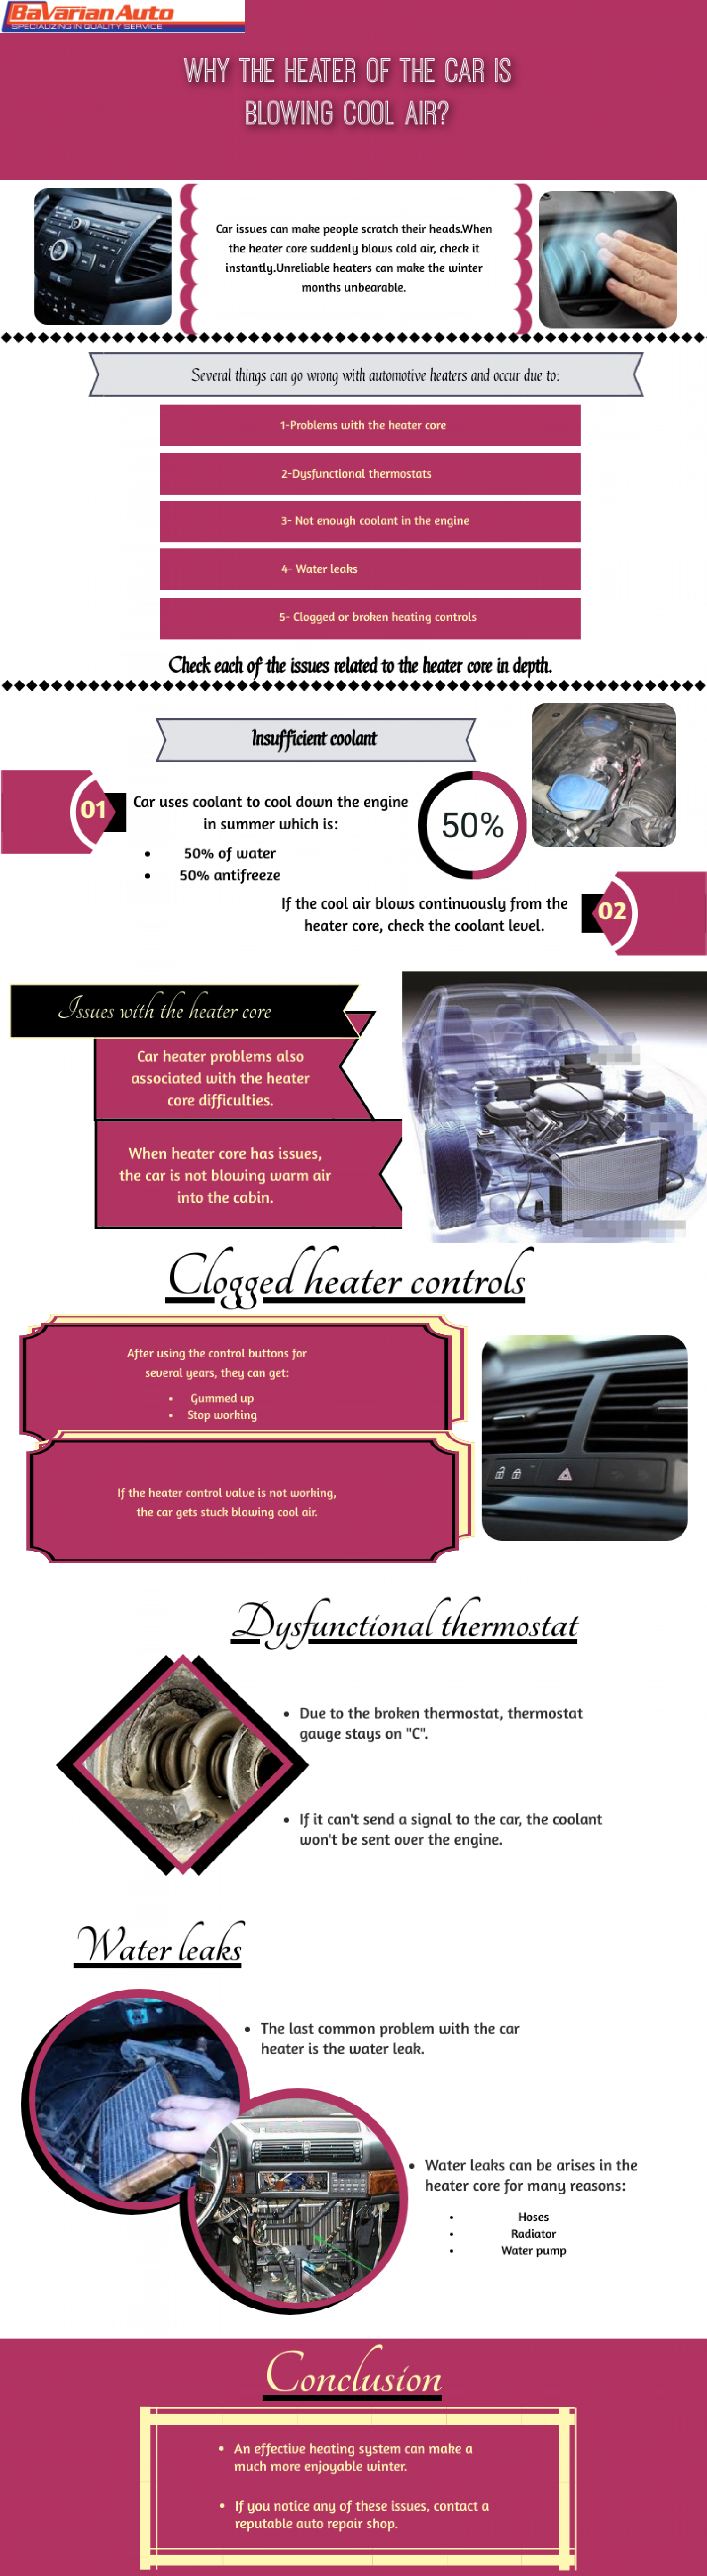 Why the heater of the car is blowing cool air Infographic